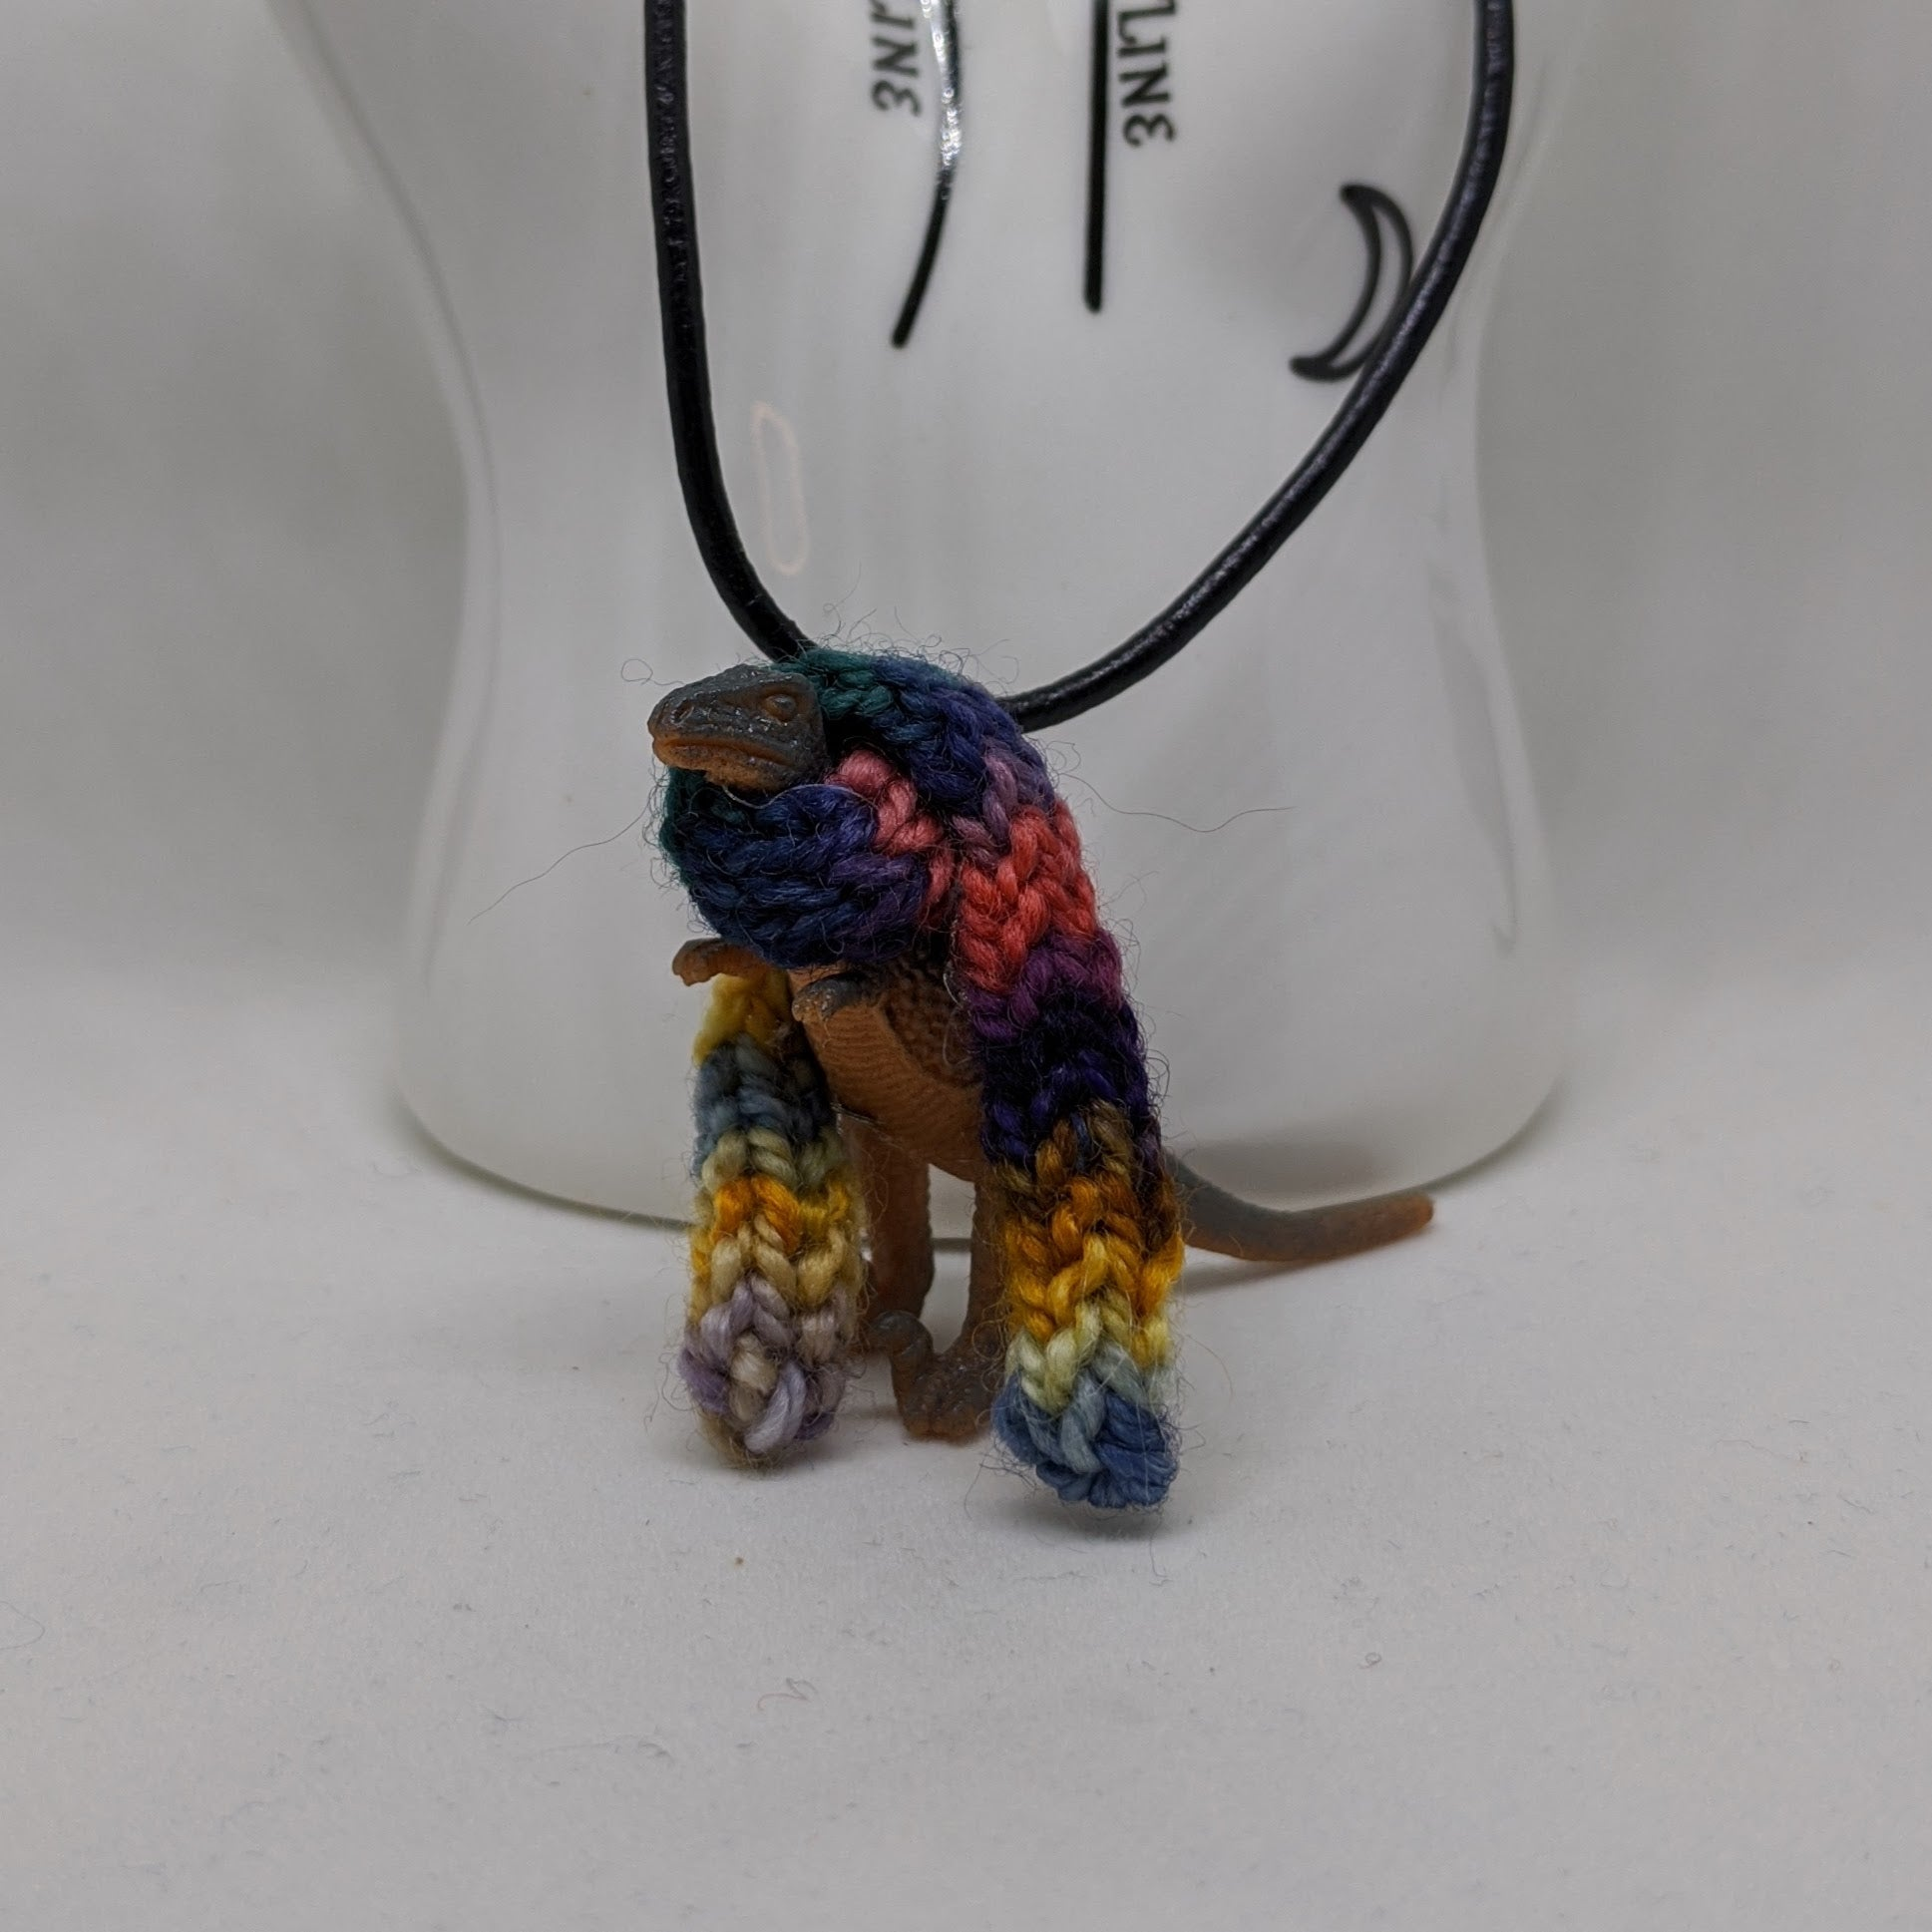 Tan and gray dinosaur wearing a handknit multicolor scarf necklace